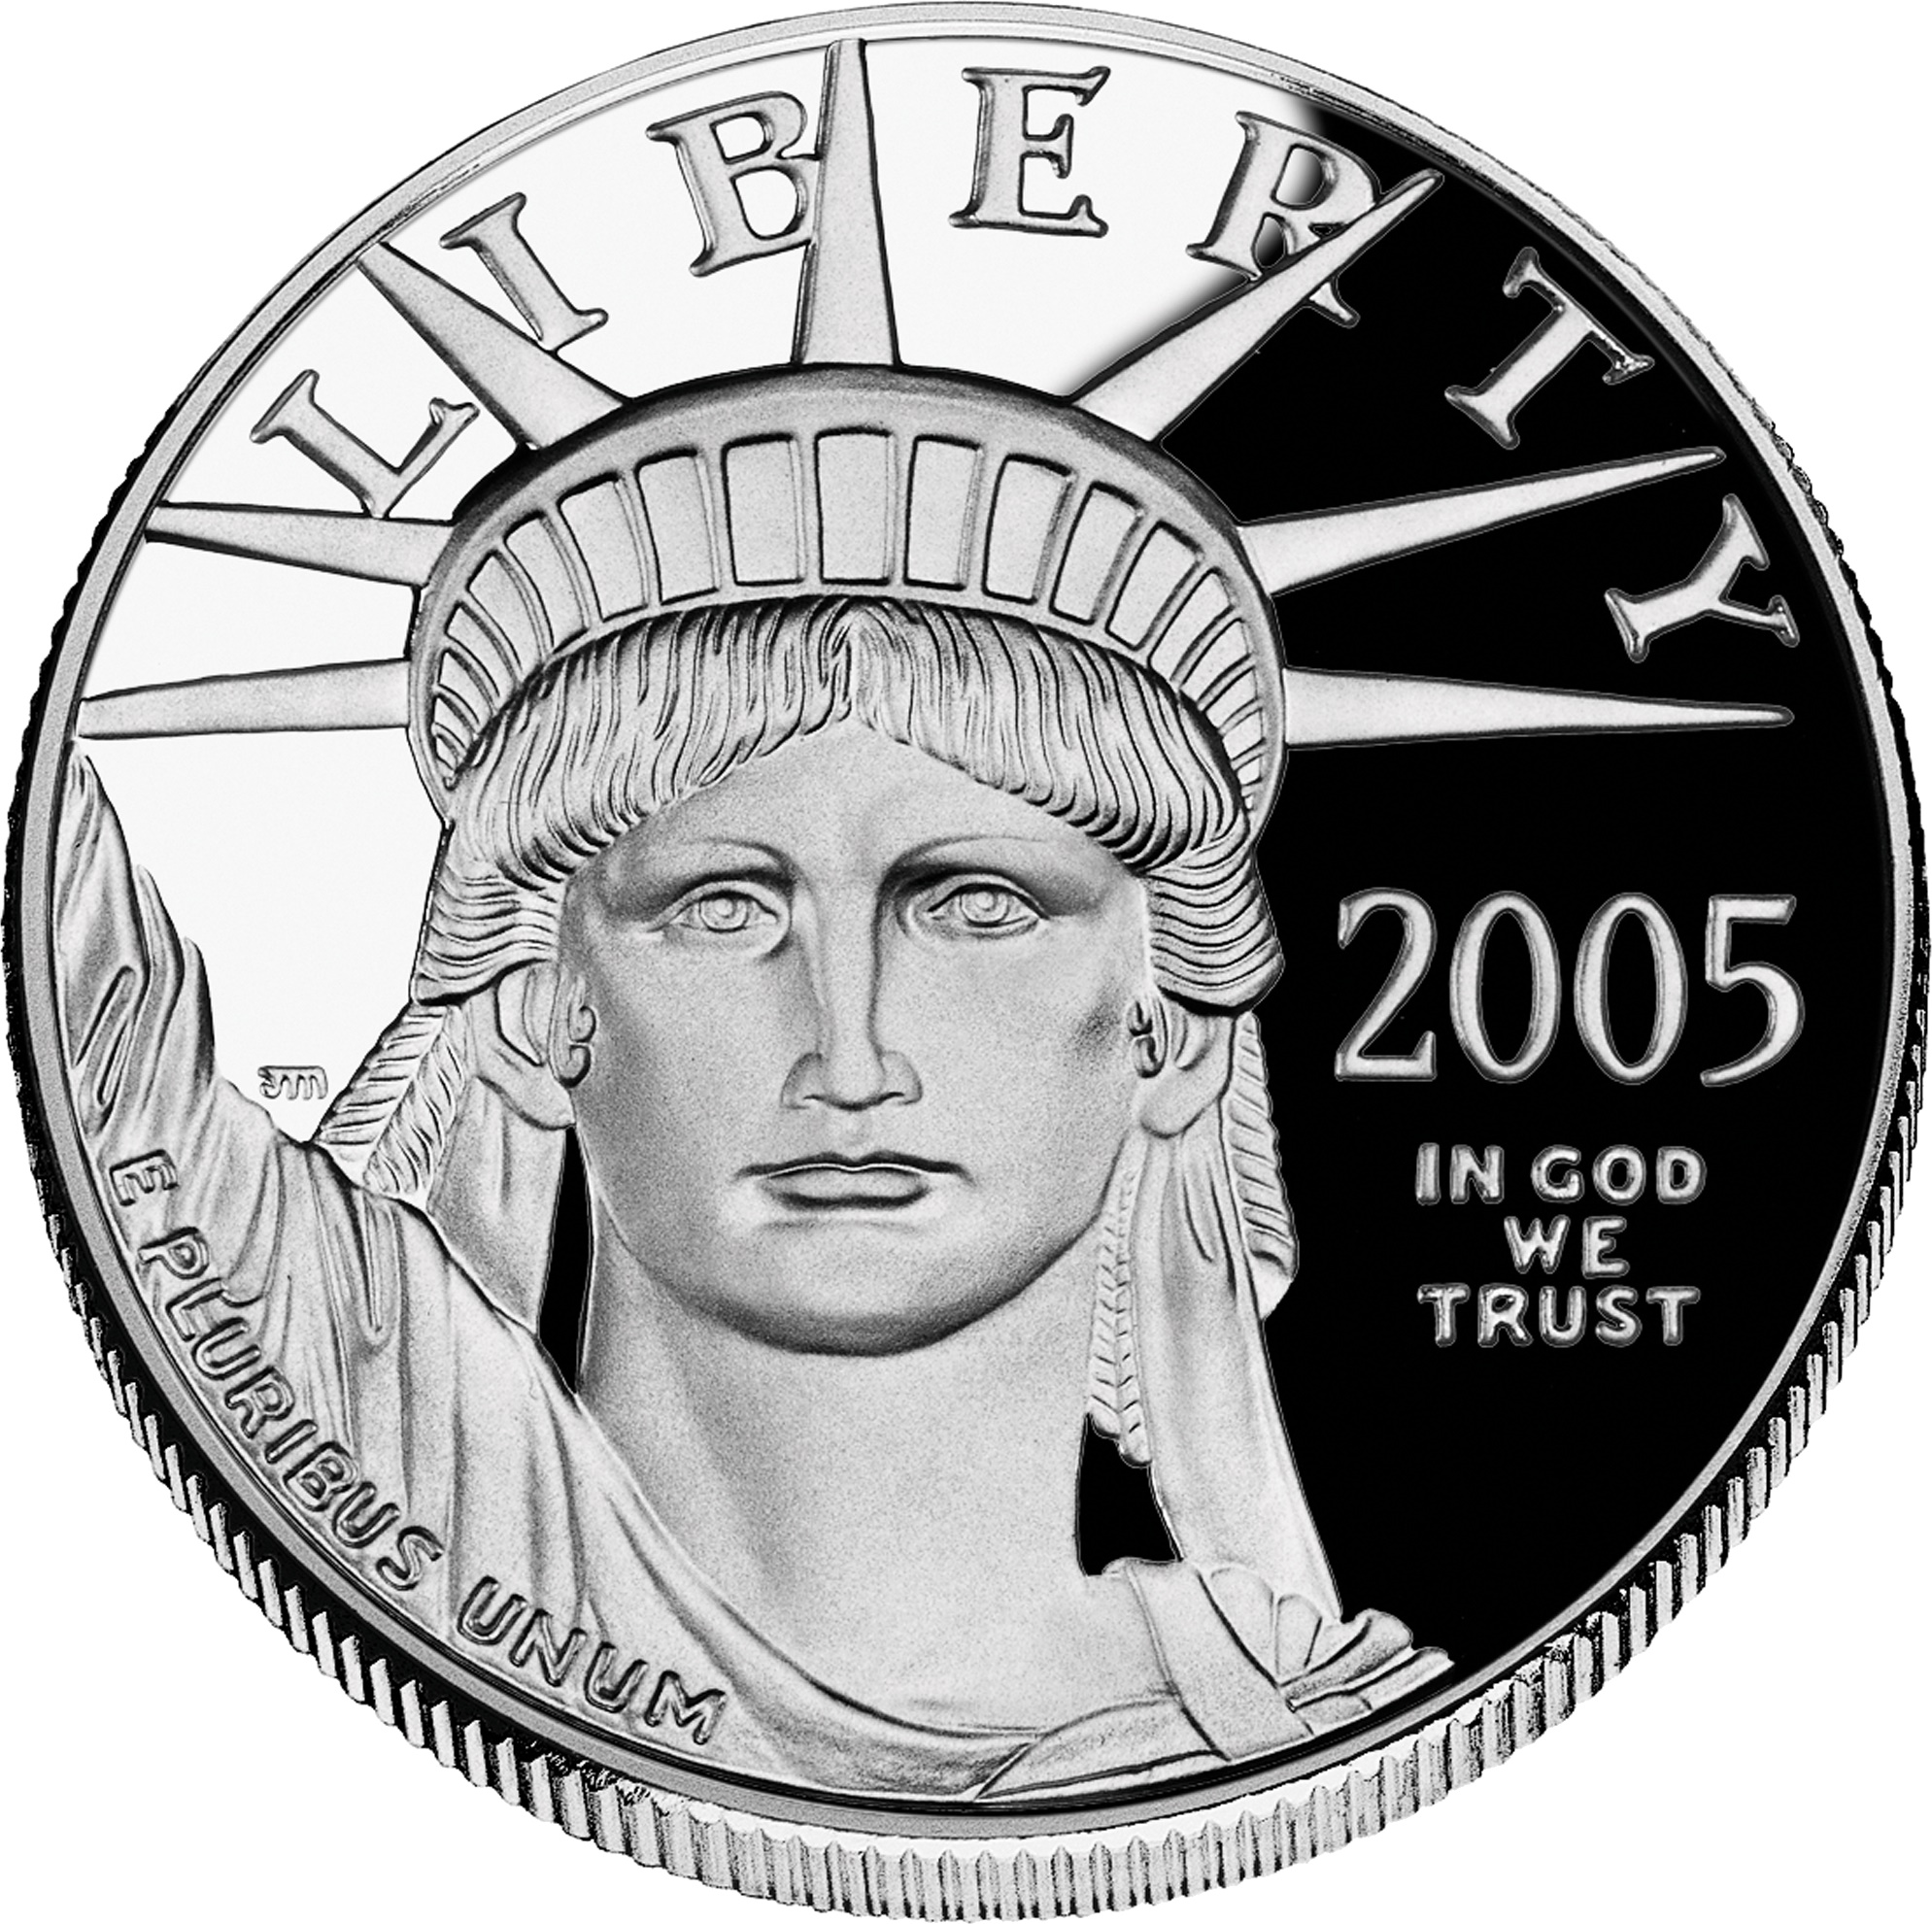 lawson coins to mark selling antiques paper us buy sell investment currency platinum coin silver bullion me gold near